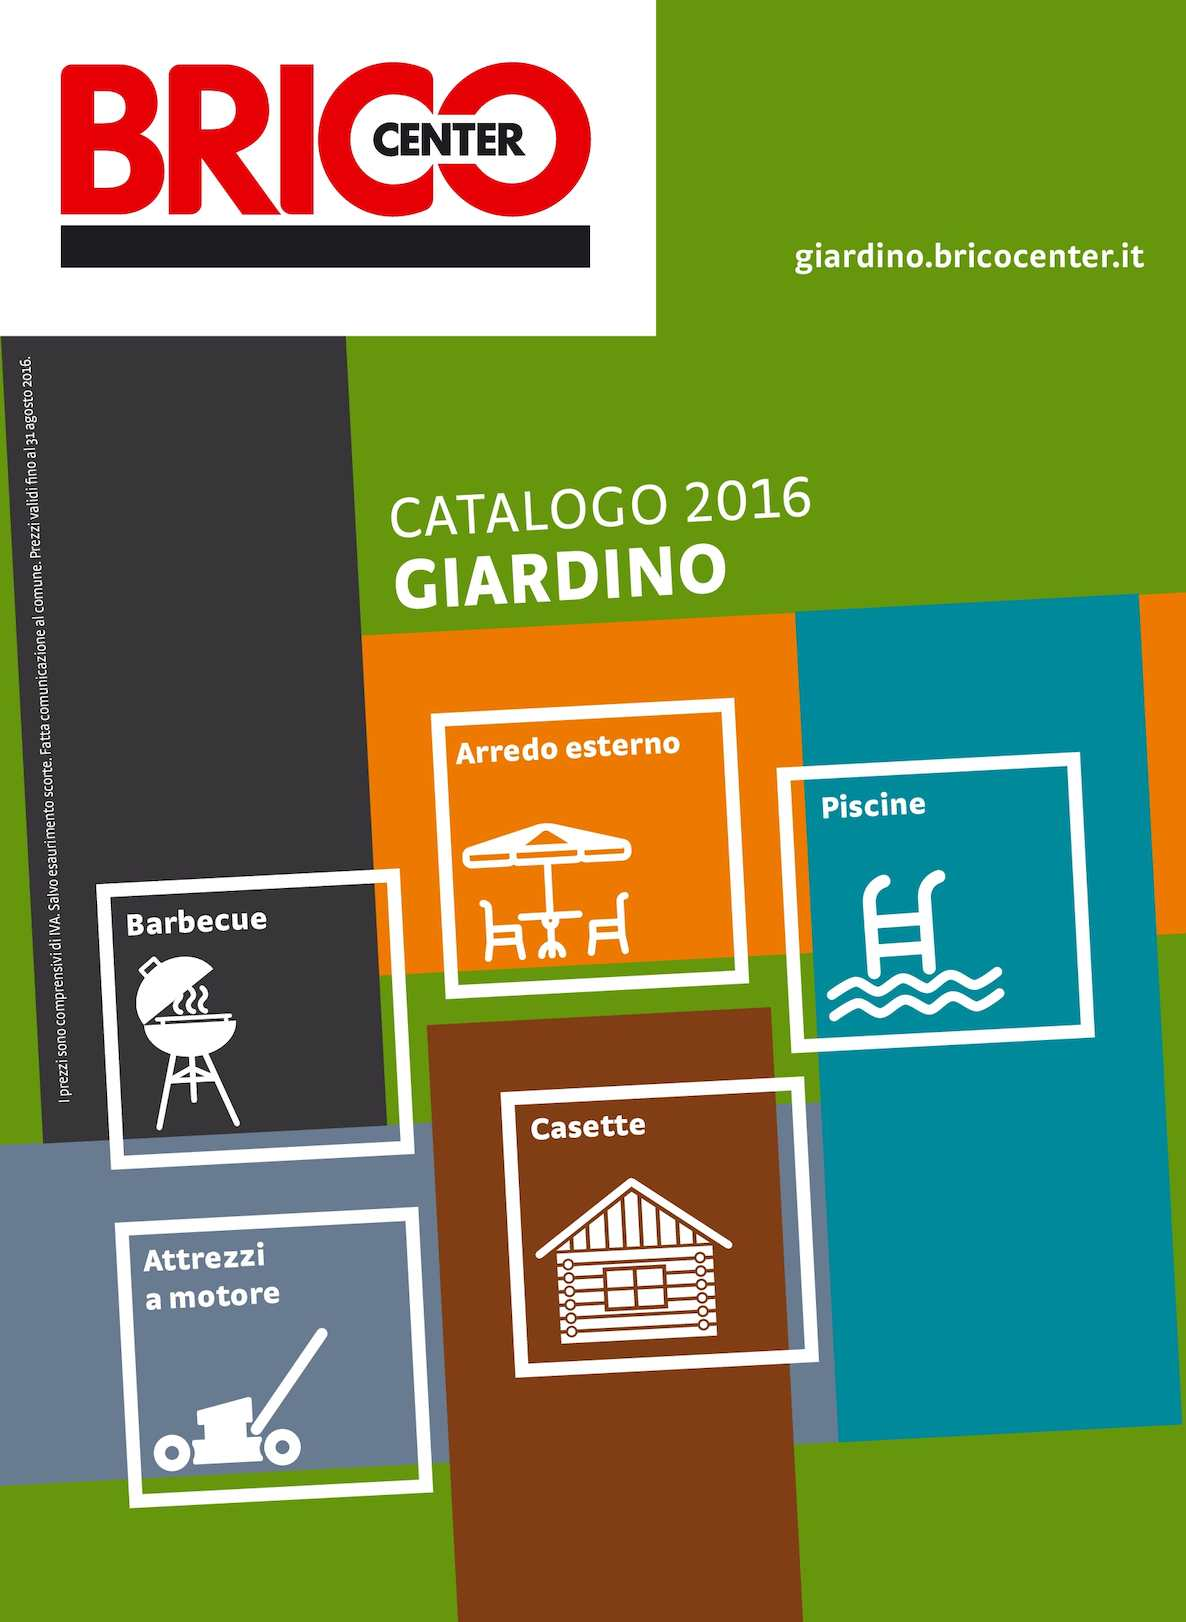 Calam o bricocenter giardino 2016 for Bricocenter catalogo 2016